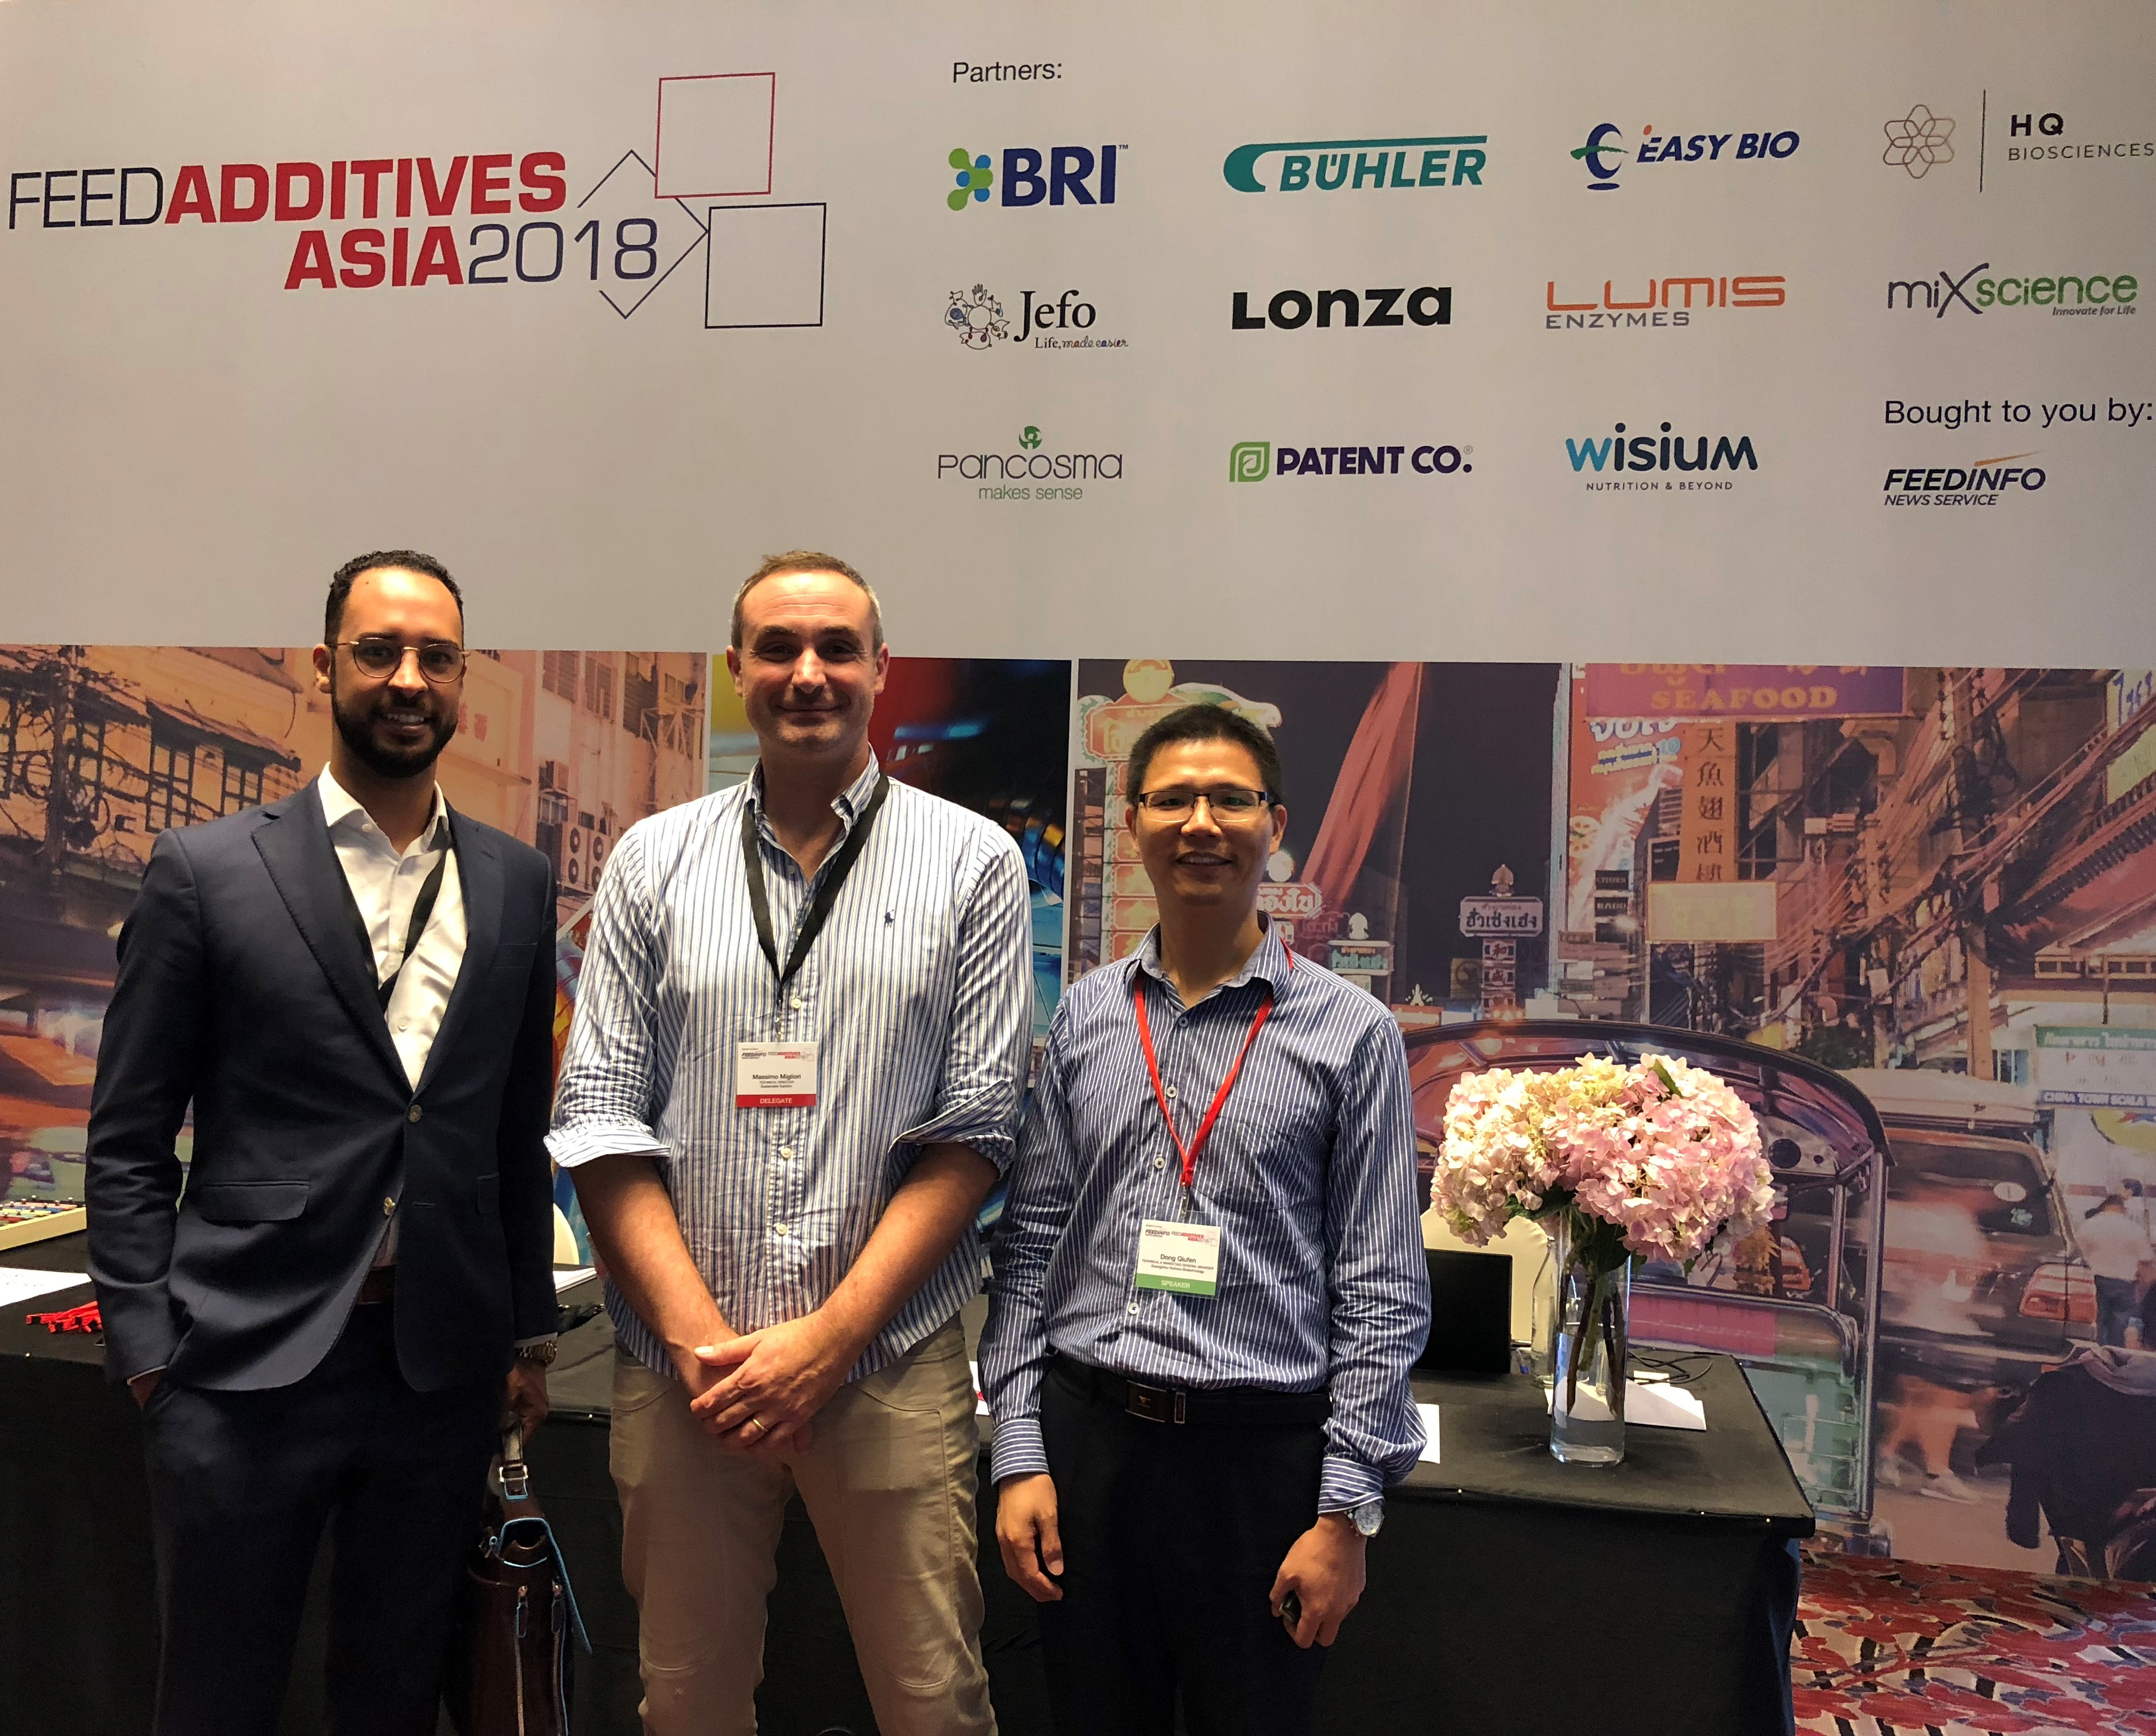 Nutriera's technical expert was invited to make a presentation in the FEED ADDITIVES ASIA 2018